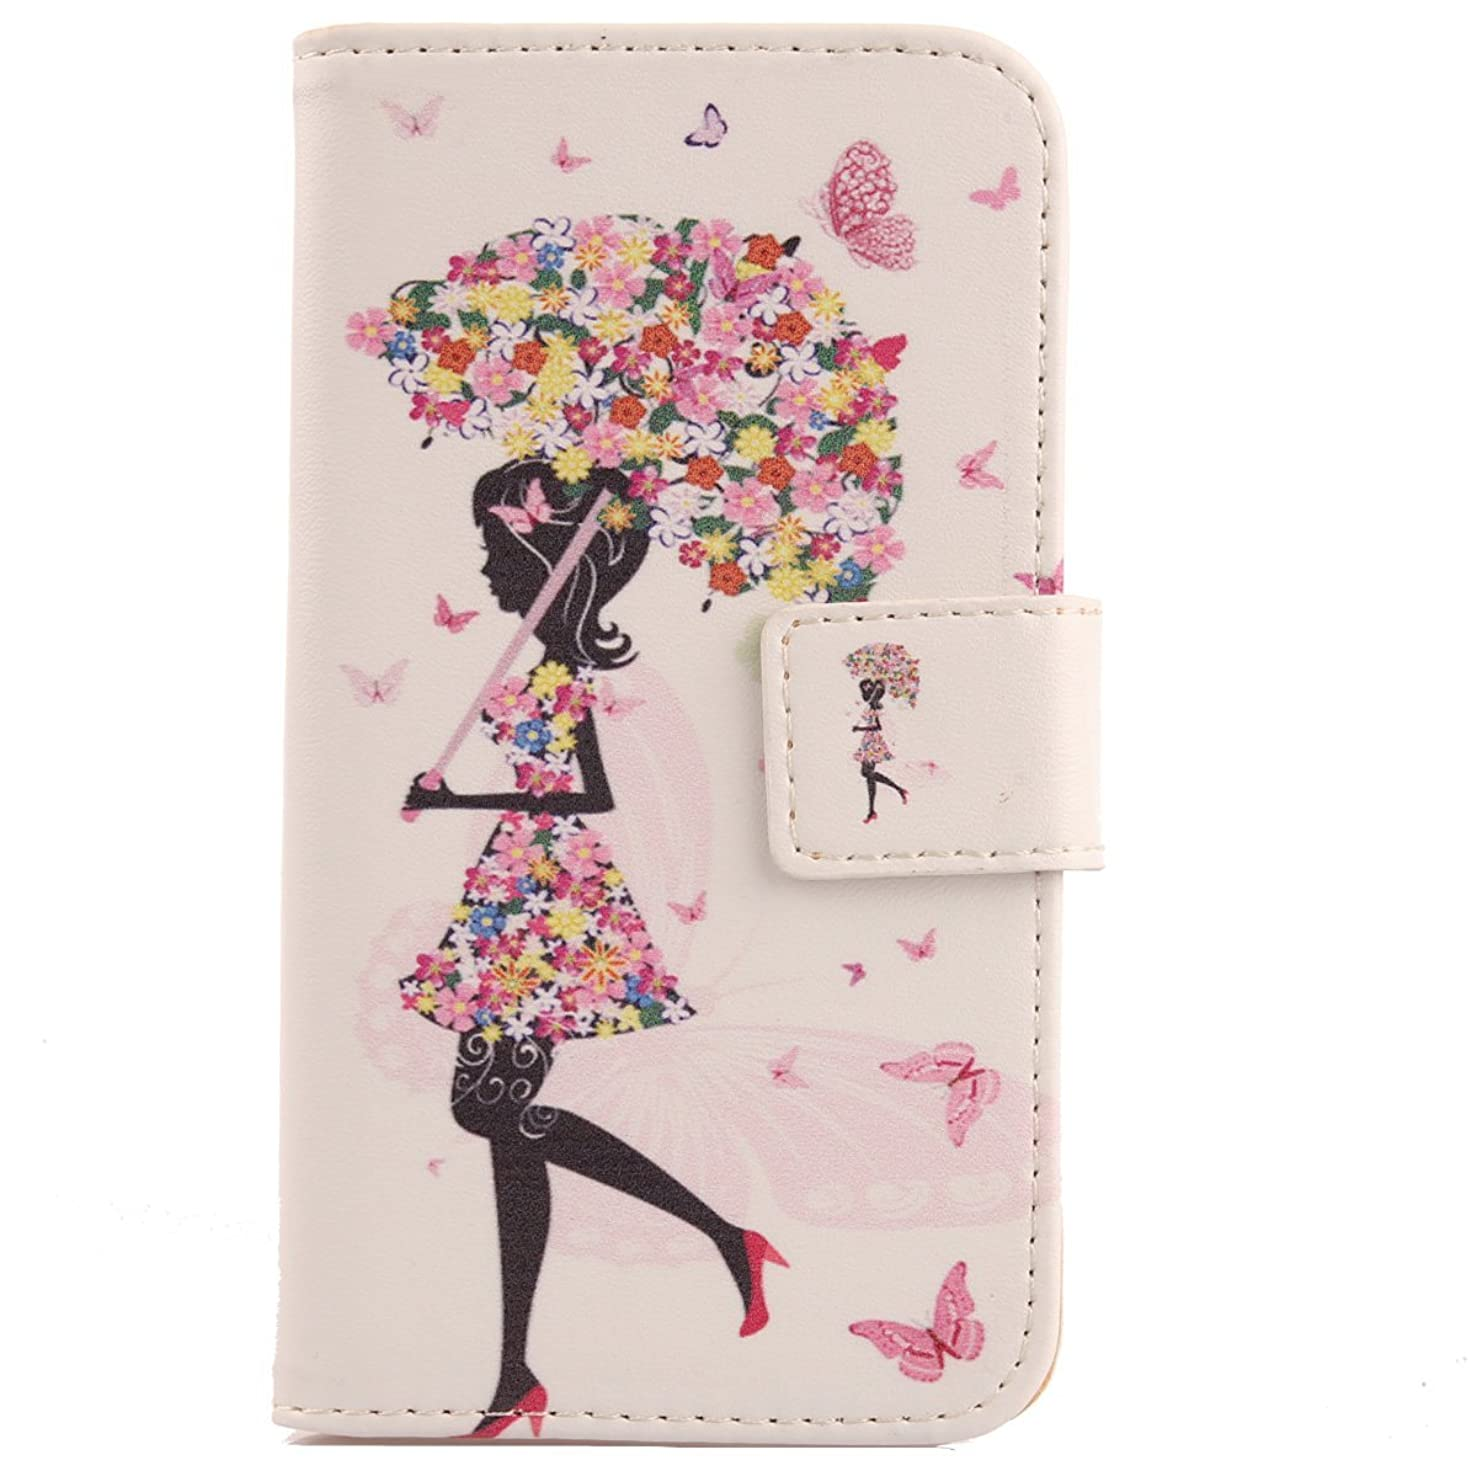 Lankashi Pattern Wallet Design Flip PU Leather Cover Skin Protection Case for Blu Vivo XI 5.9